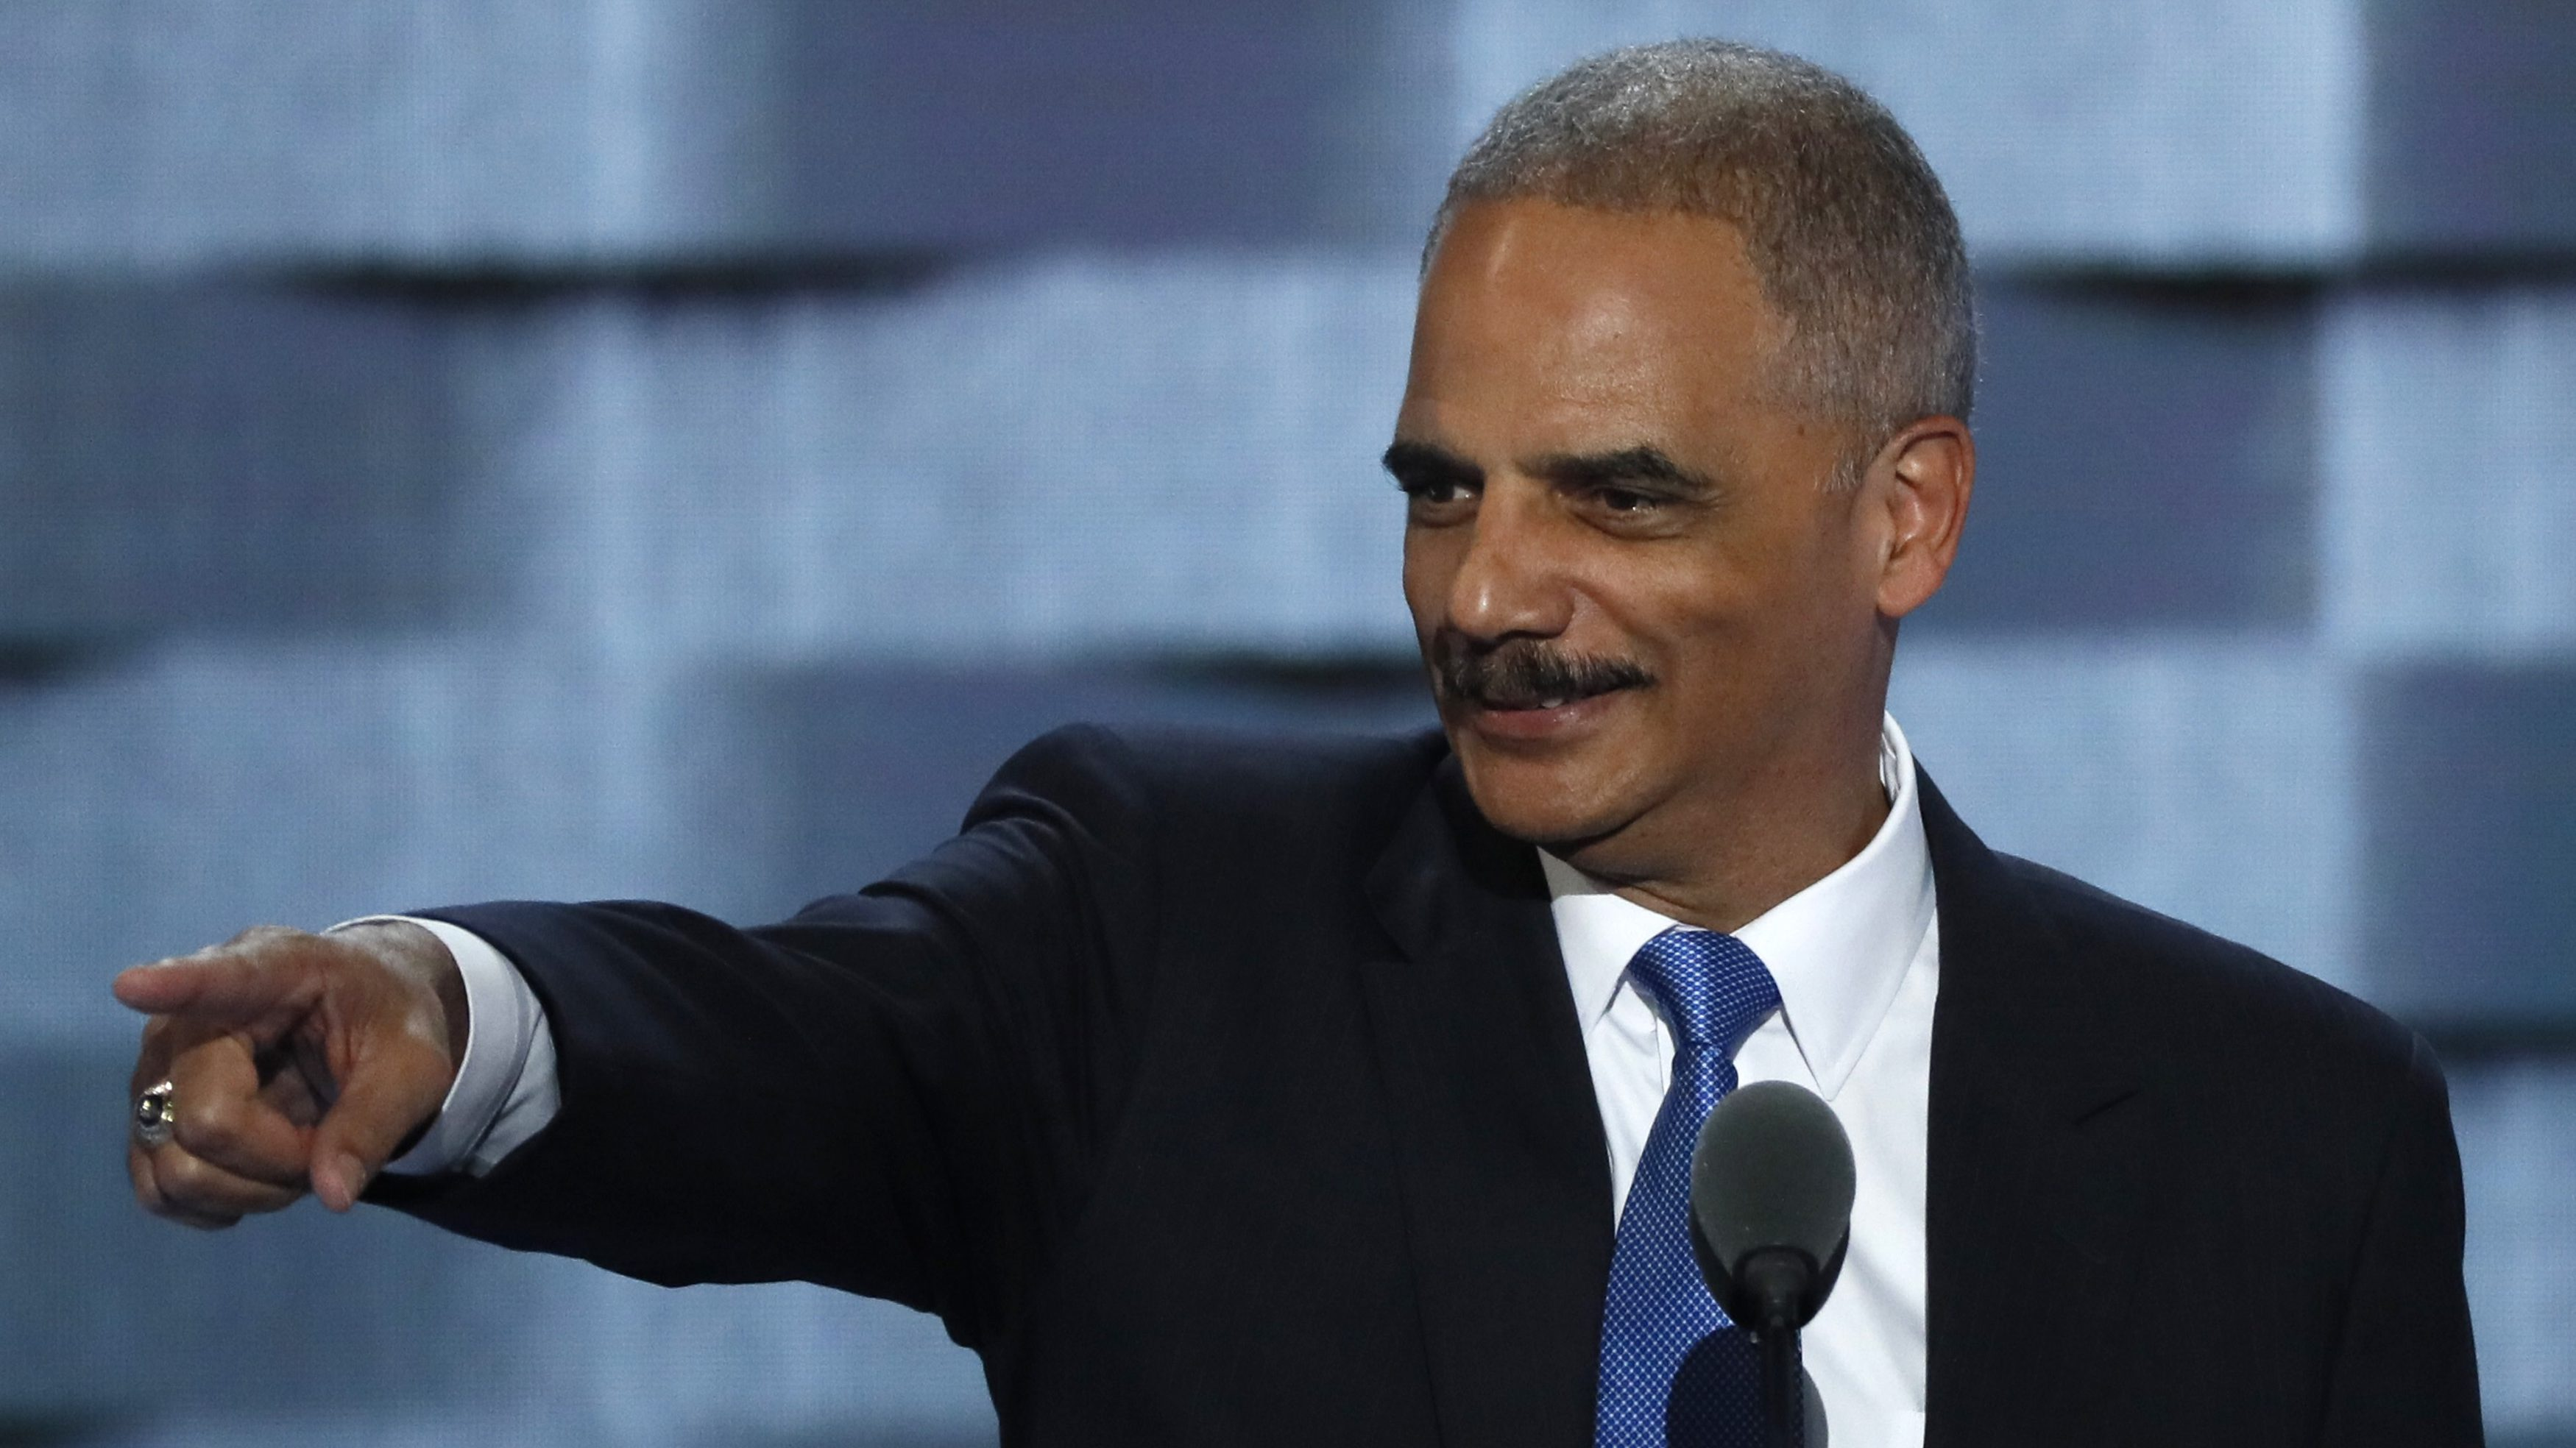 Former U.S. Attorney General Eric Holder speaks during the second day at the Democratic National Convention in Philadelphia, Pennsylvania, U.S. July 26, 2016. REUTERS/Mike Segar - RTSJSWT